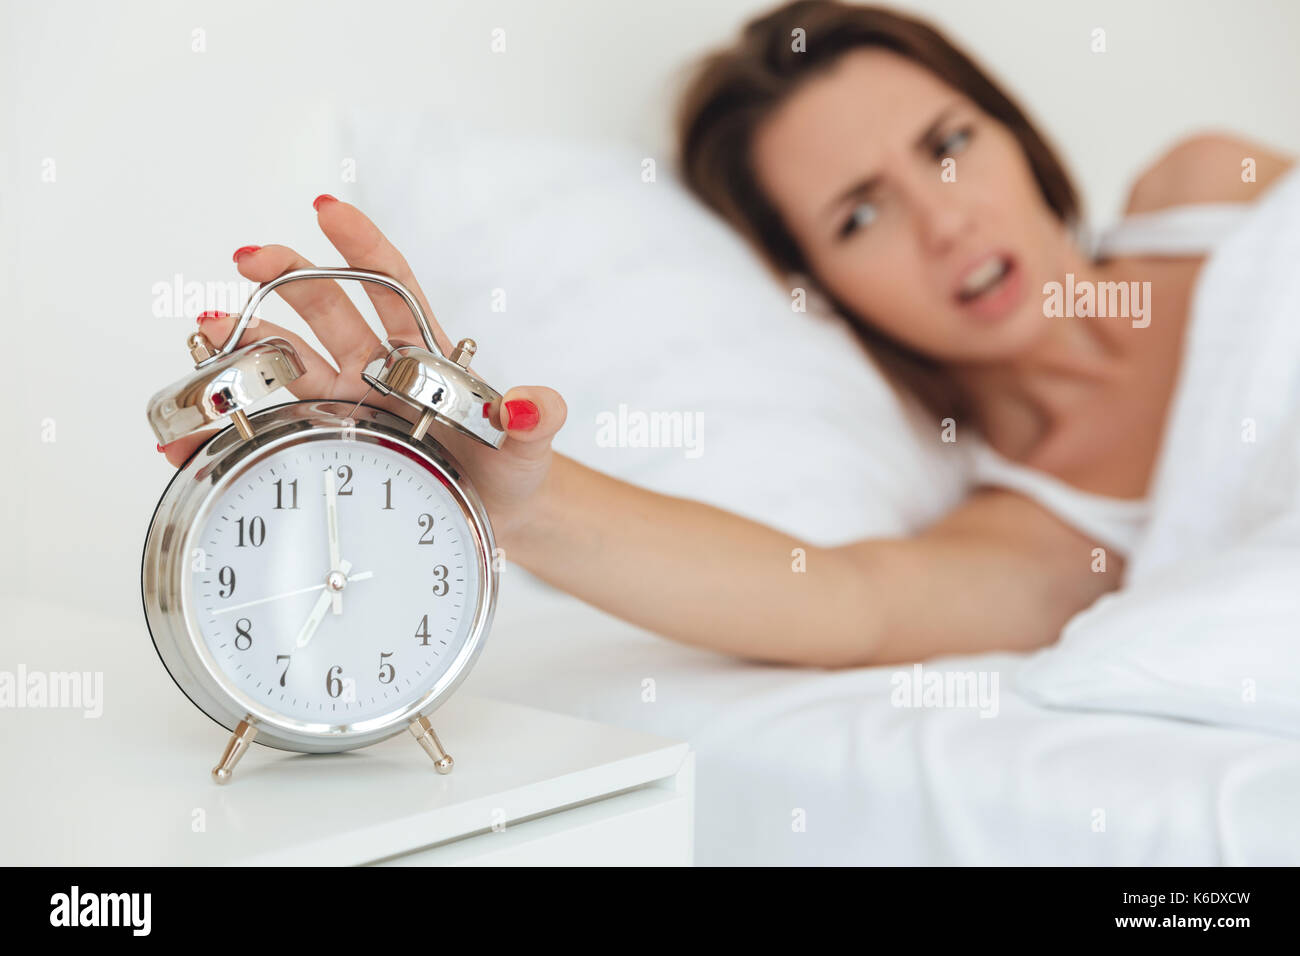 Close Up Of A Woman Turning Off Alarm Clock In The Morning While Laying In Bed